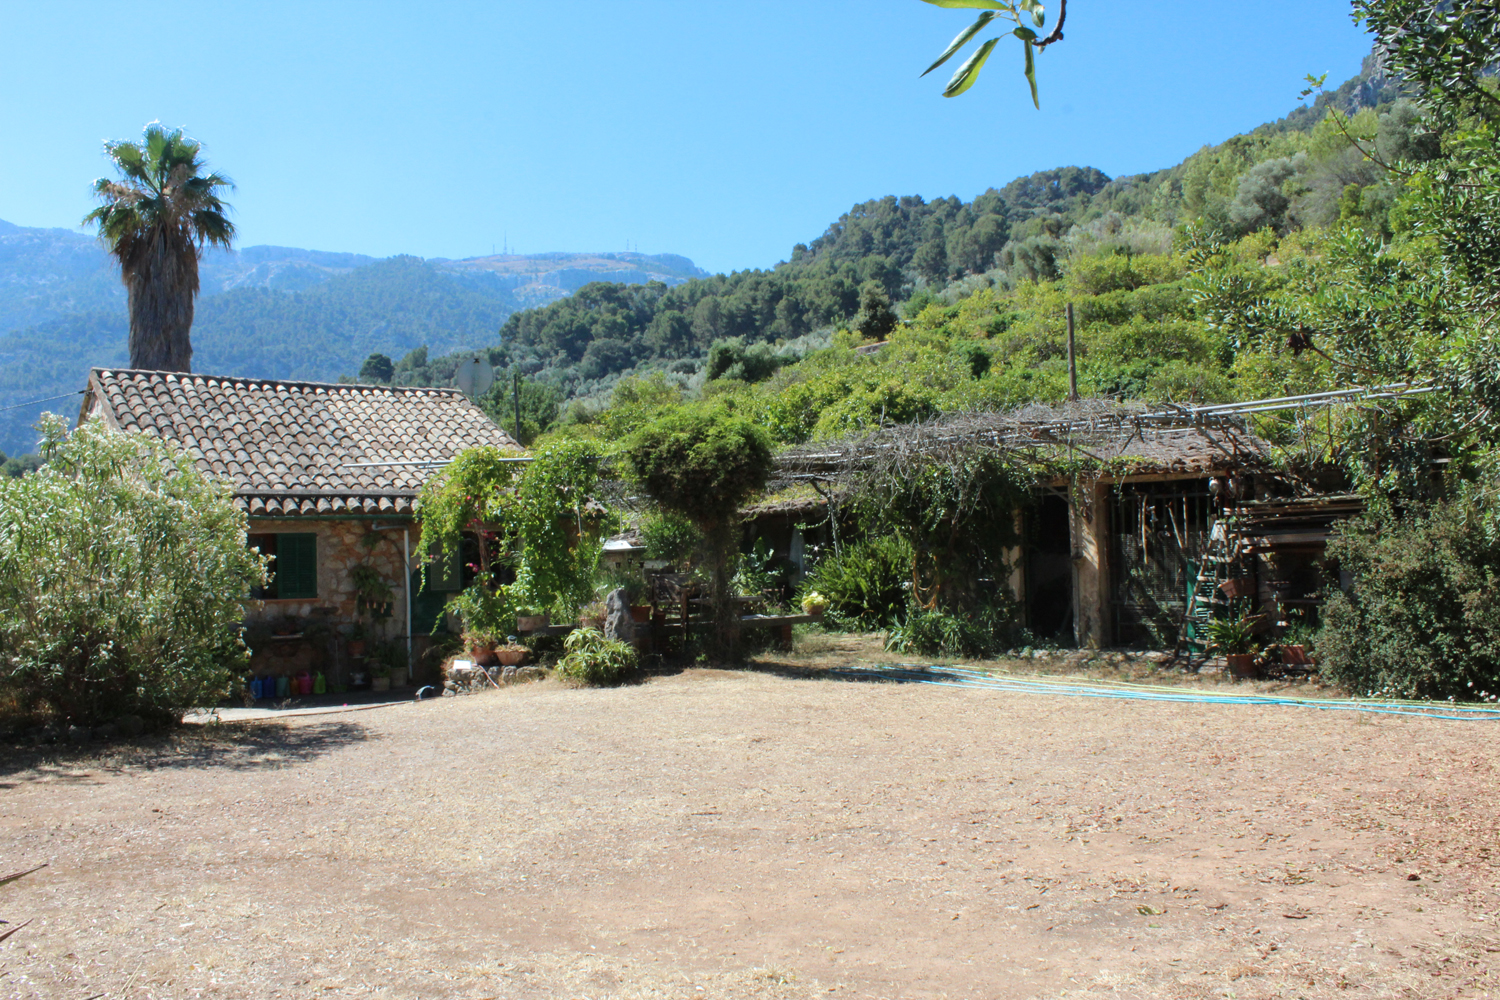 Images of Rustic Finca with beautiful views... real estate property